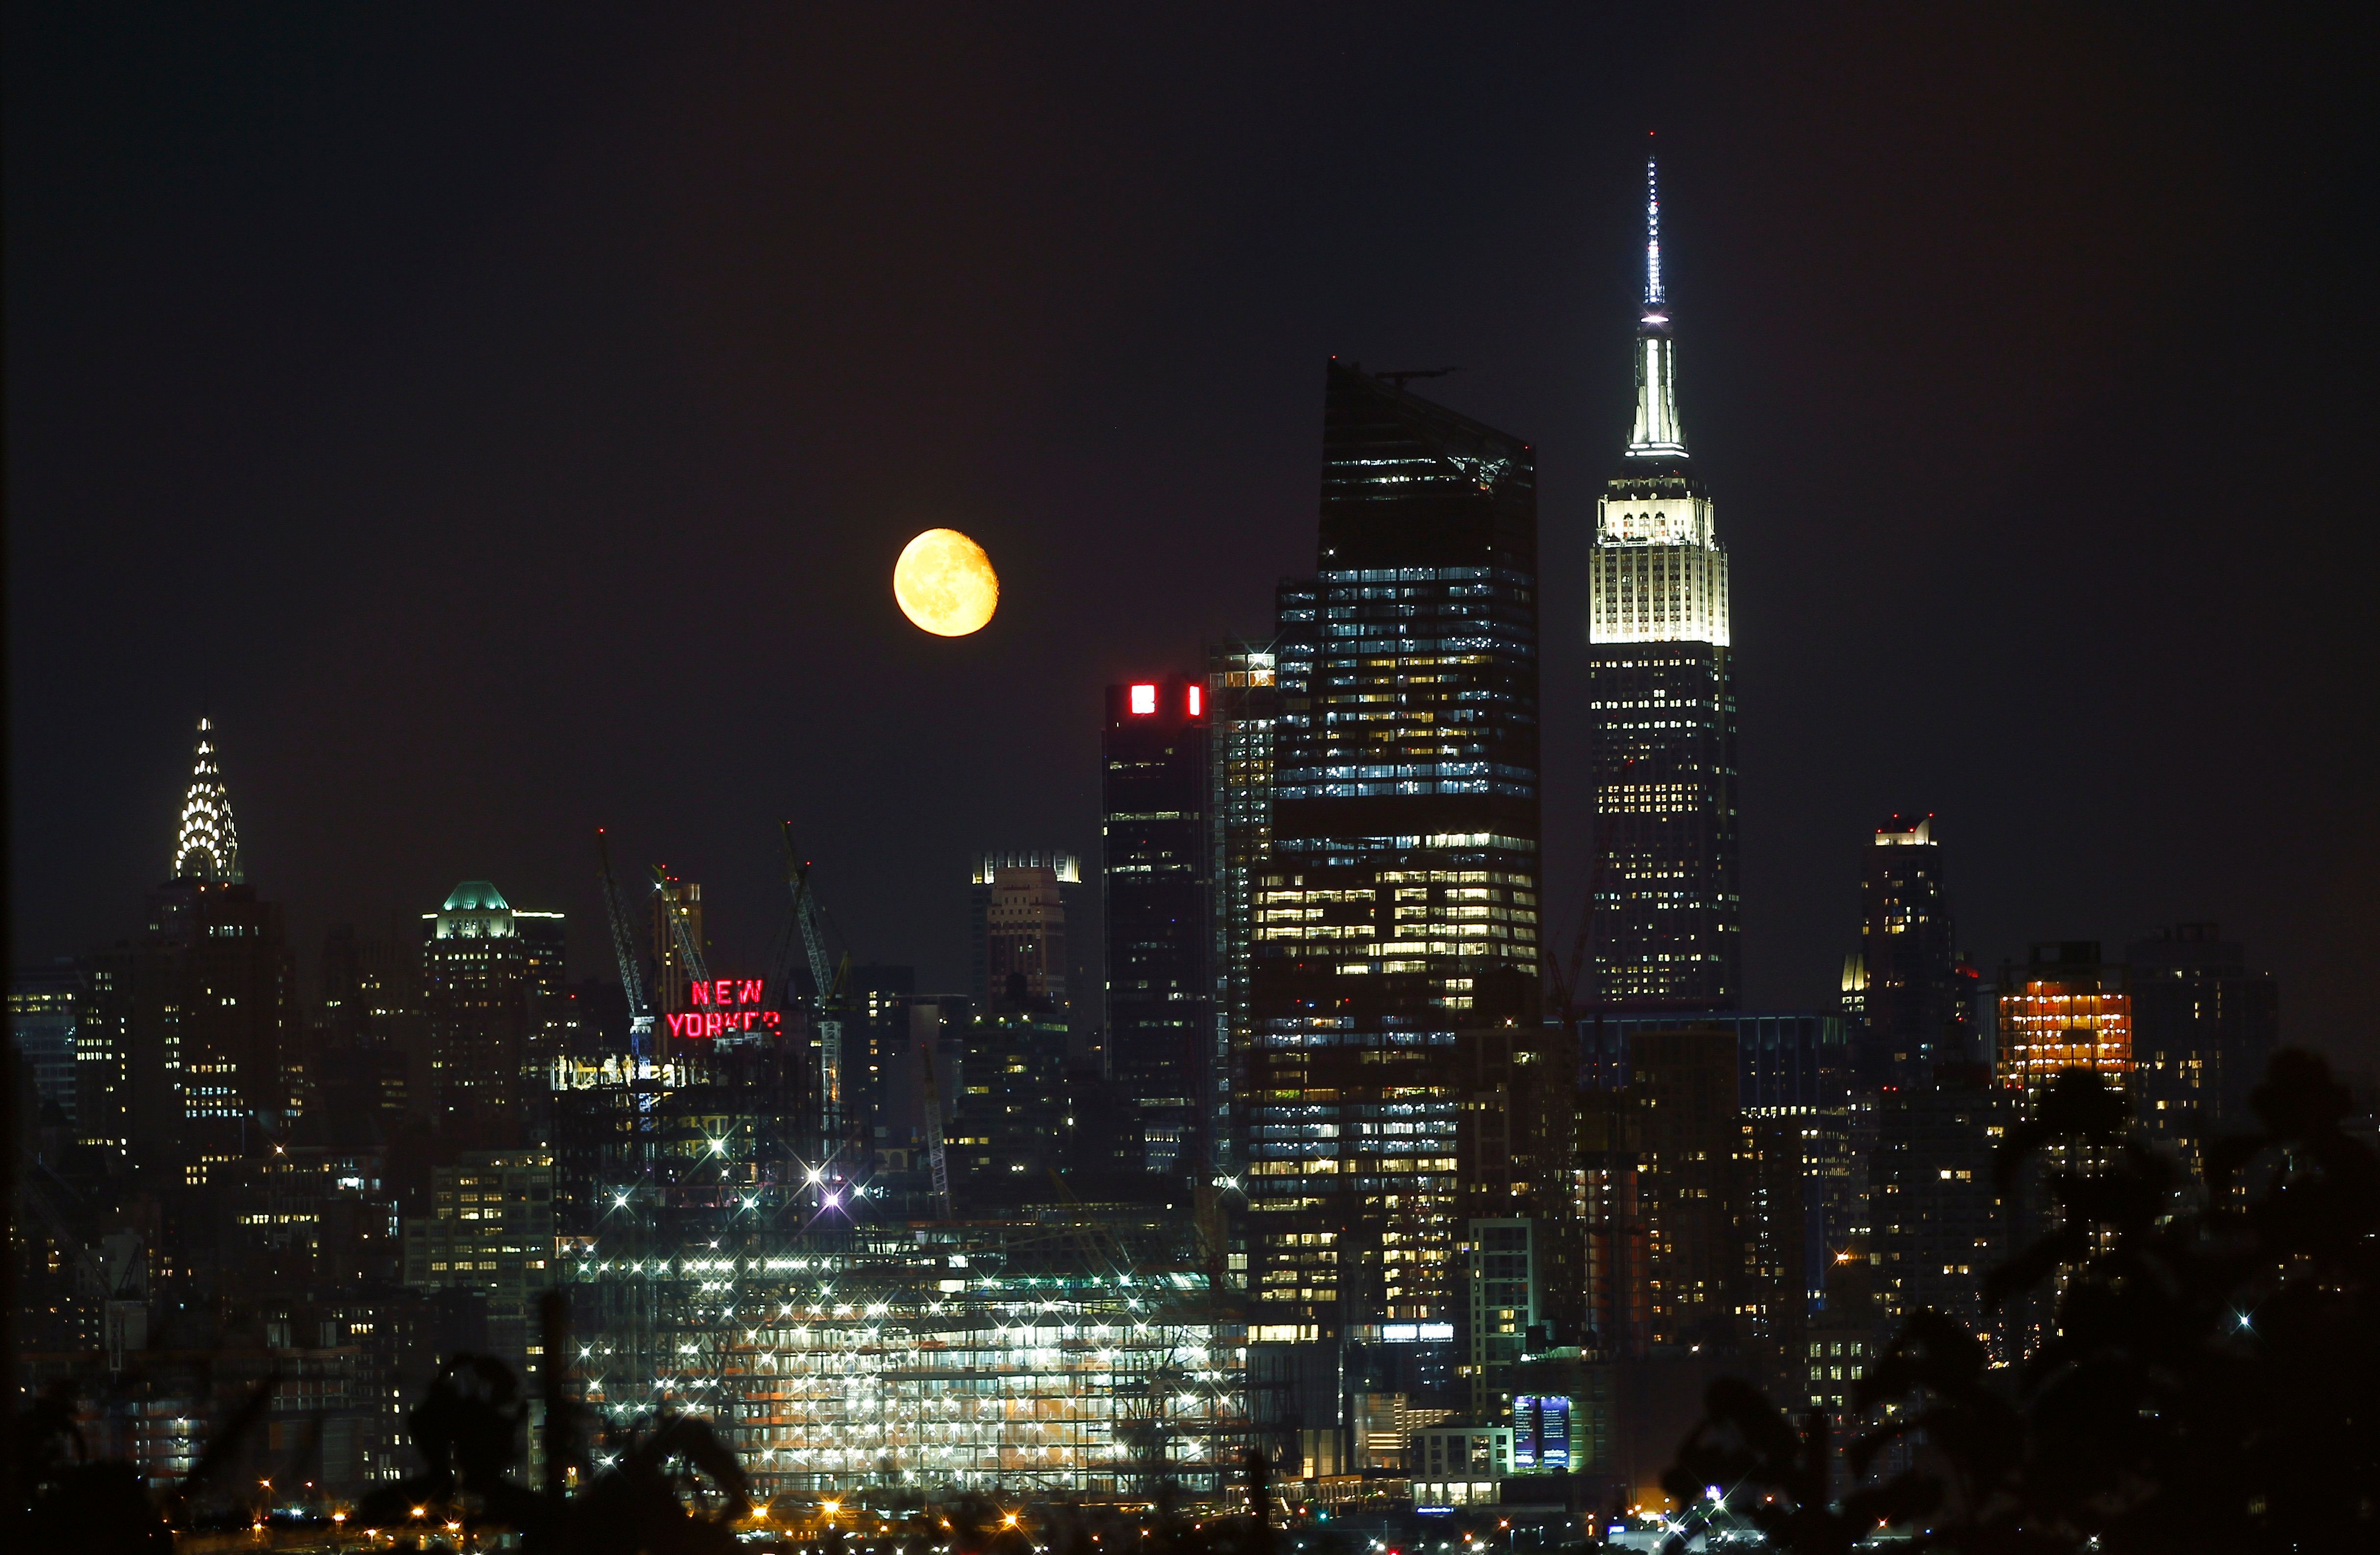 NEW YORK, NY - JULY 22: The moon rises between the Chrysler Building and the Empire State Building on July 22, 2016 in New York City. (Photo by Gary Hershorn/Getty Images)